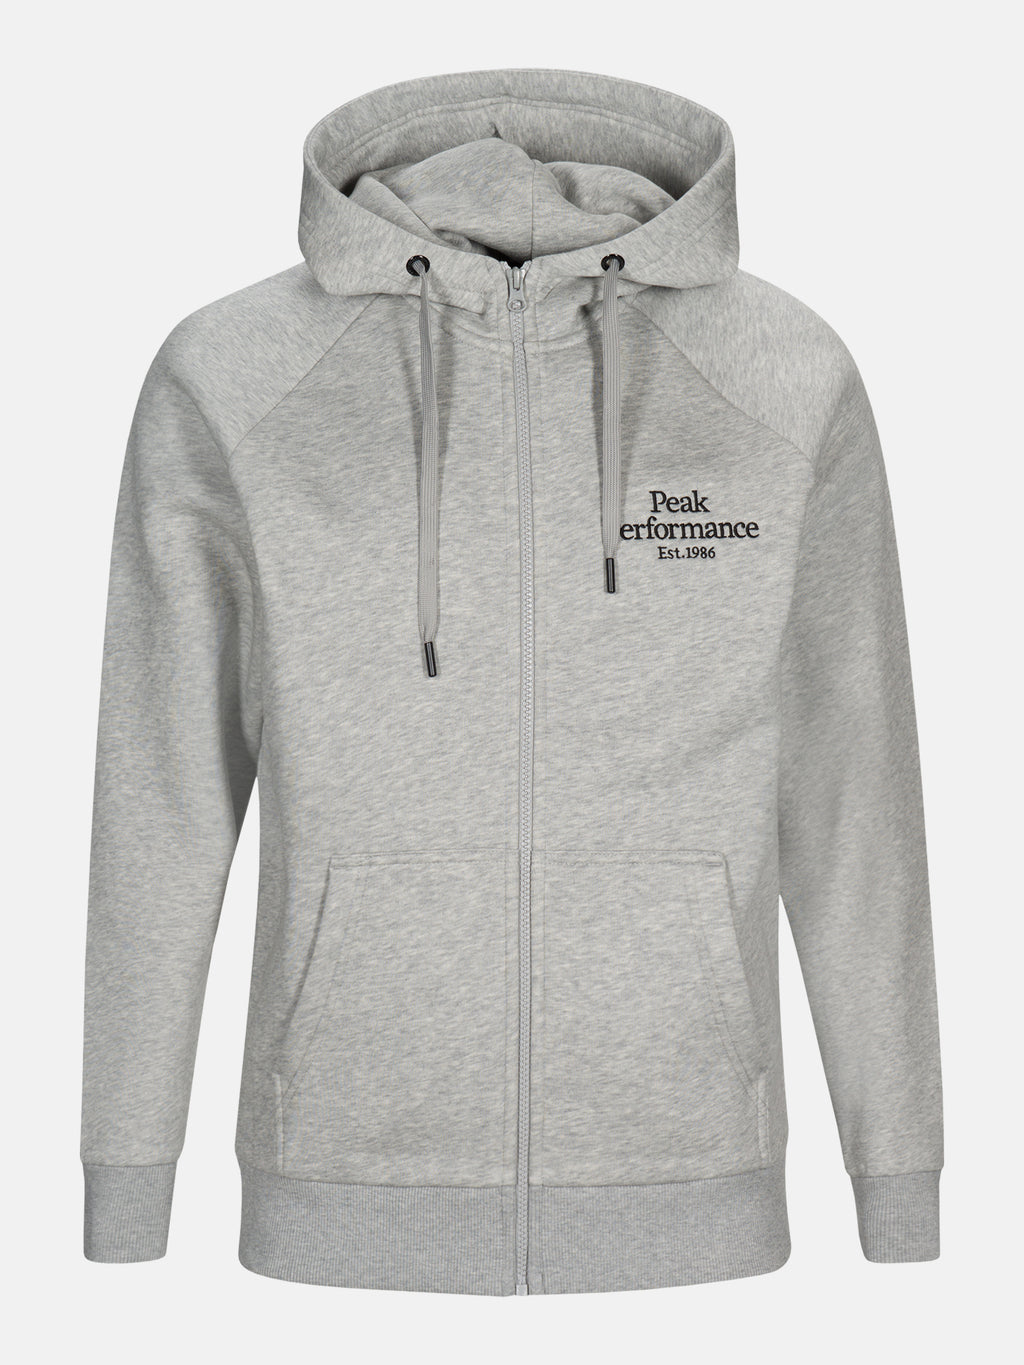 PEAK PERFORMANCE HERR Original Zip Hoodie